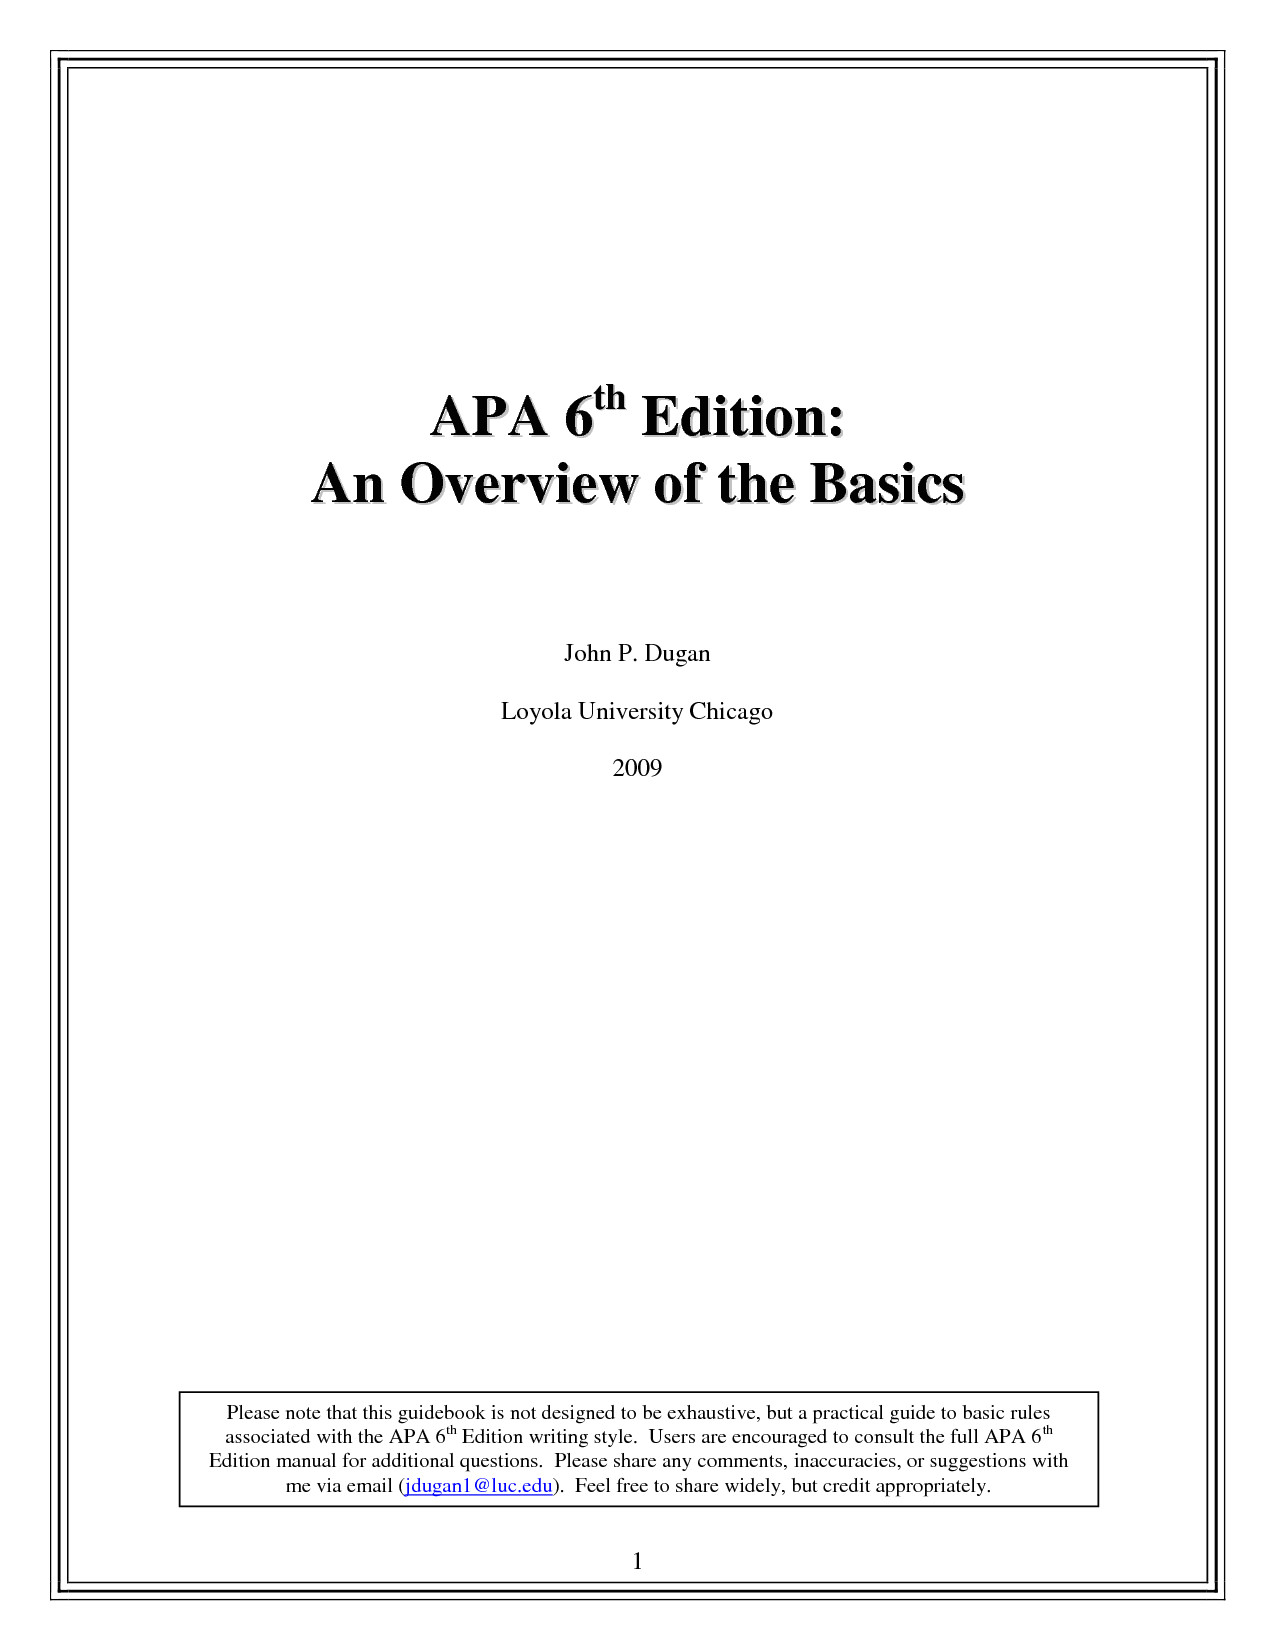 apa 6th edition template